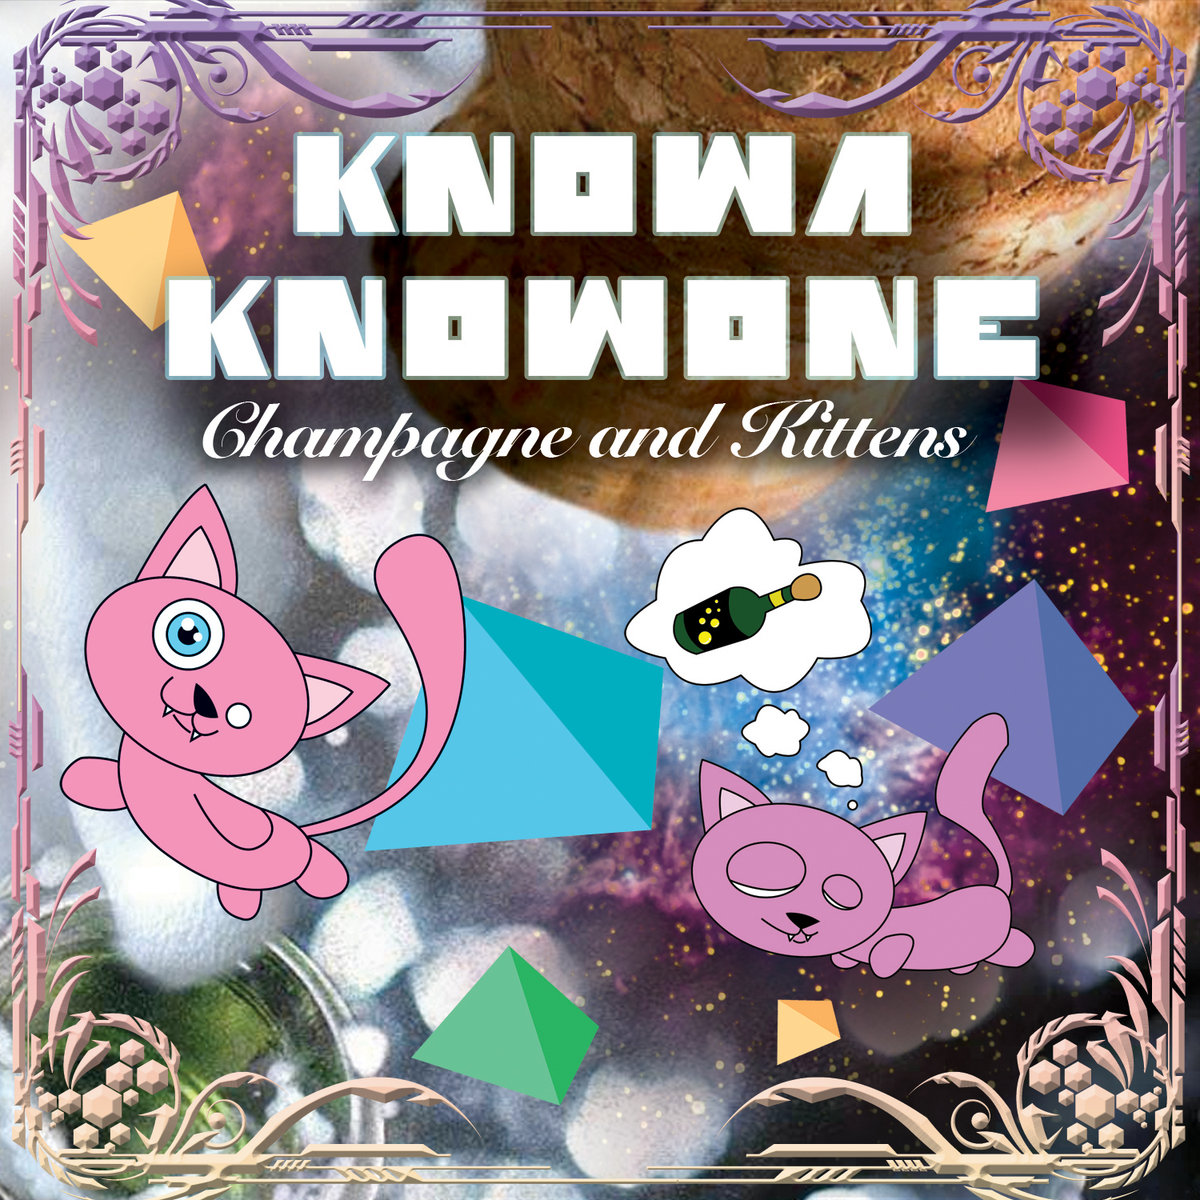 Knowa Knowone - Champagne and Kittens @ 'Champagne and Kittens' album (bass, electronic)